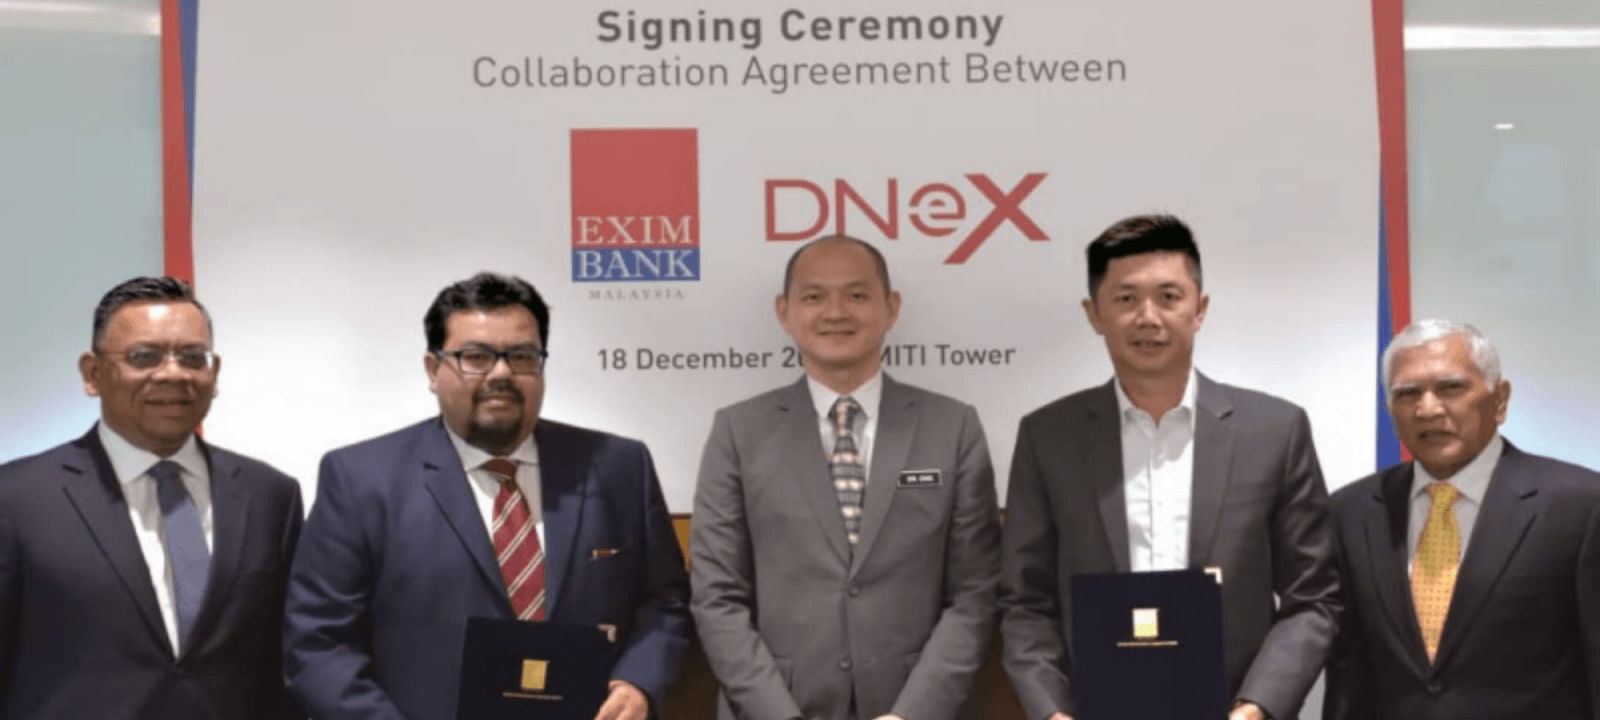 EXIM Bank Teams Up With DNeX to Accelerate Export and Investment Businesses Globally